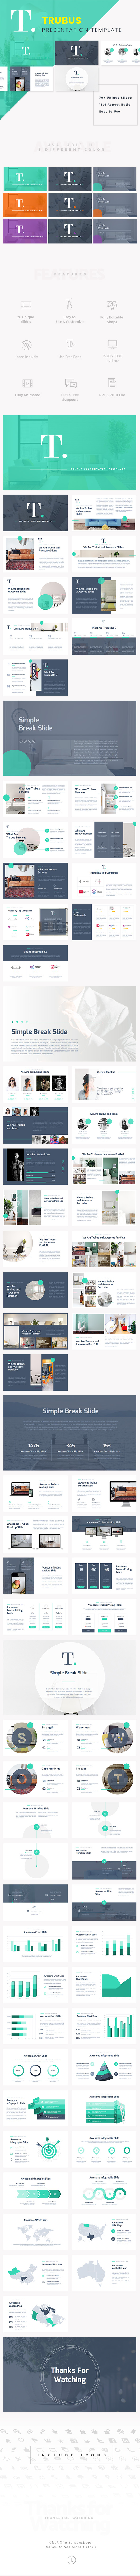 Trubus Powerpoint Template - Pitch Deck PowerPoint Templates